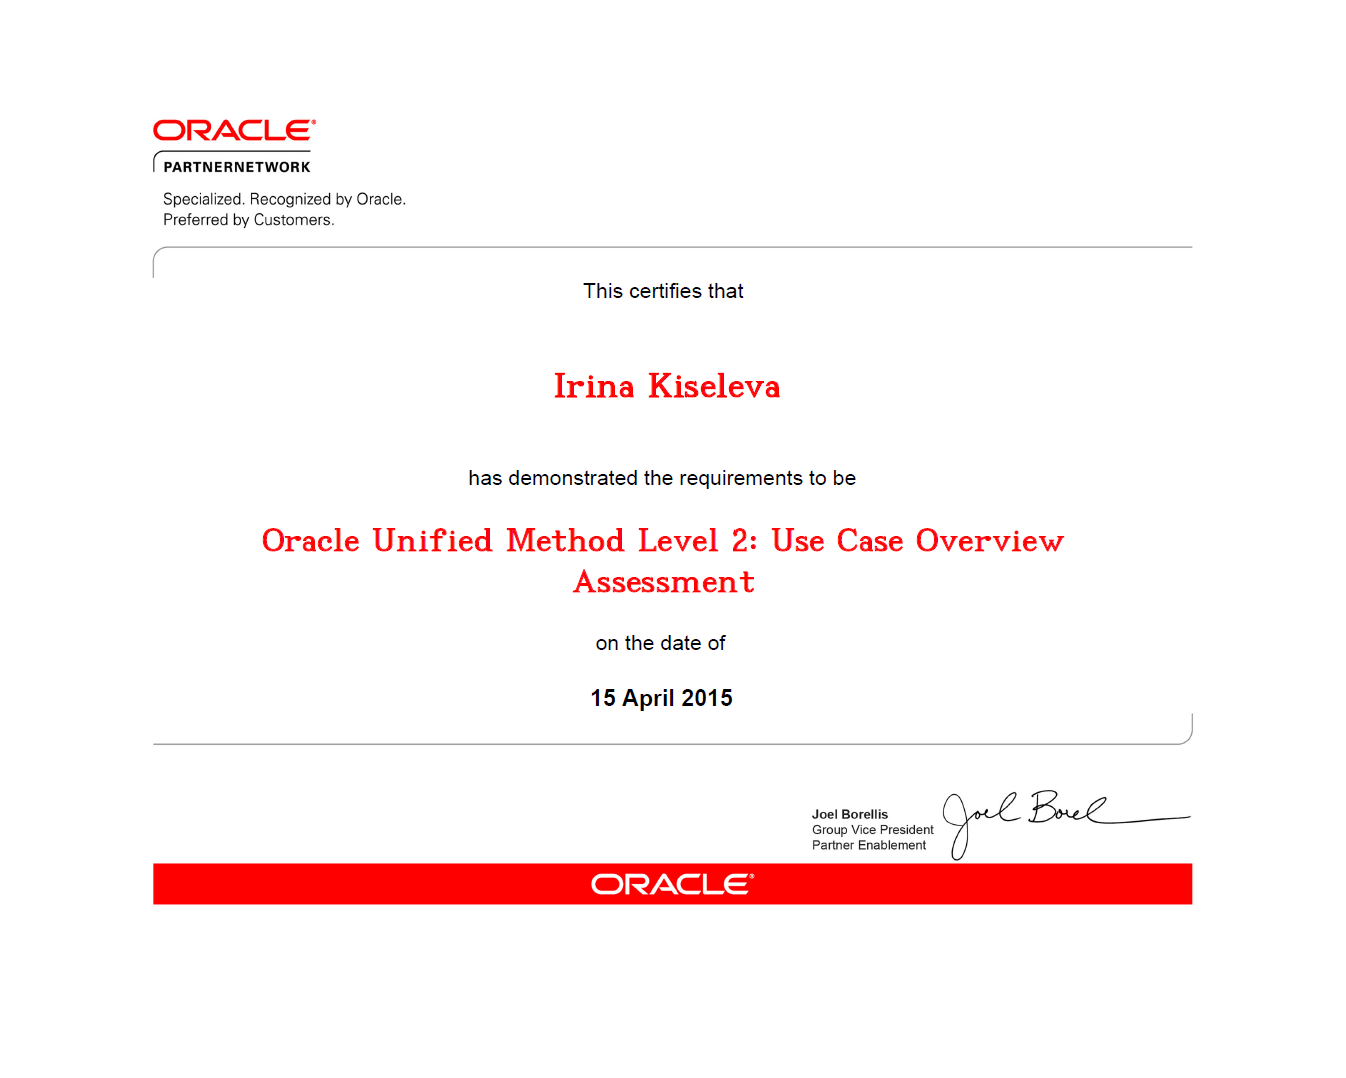 Kiseleva OUM Level 2 Use Case Overview